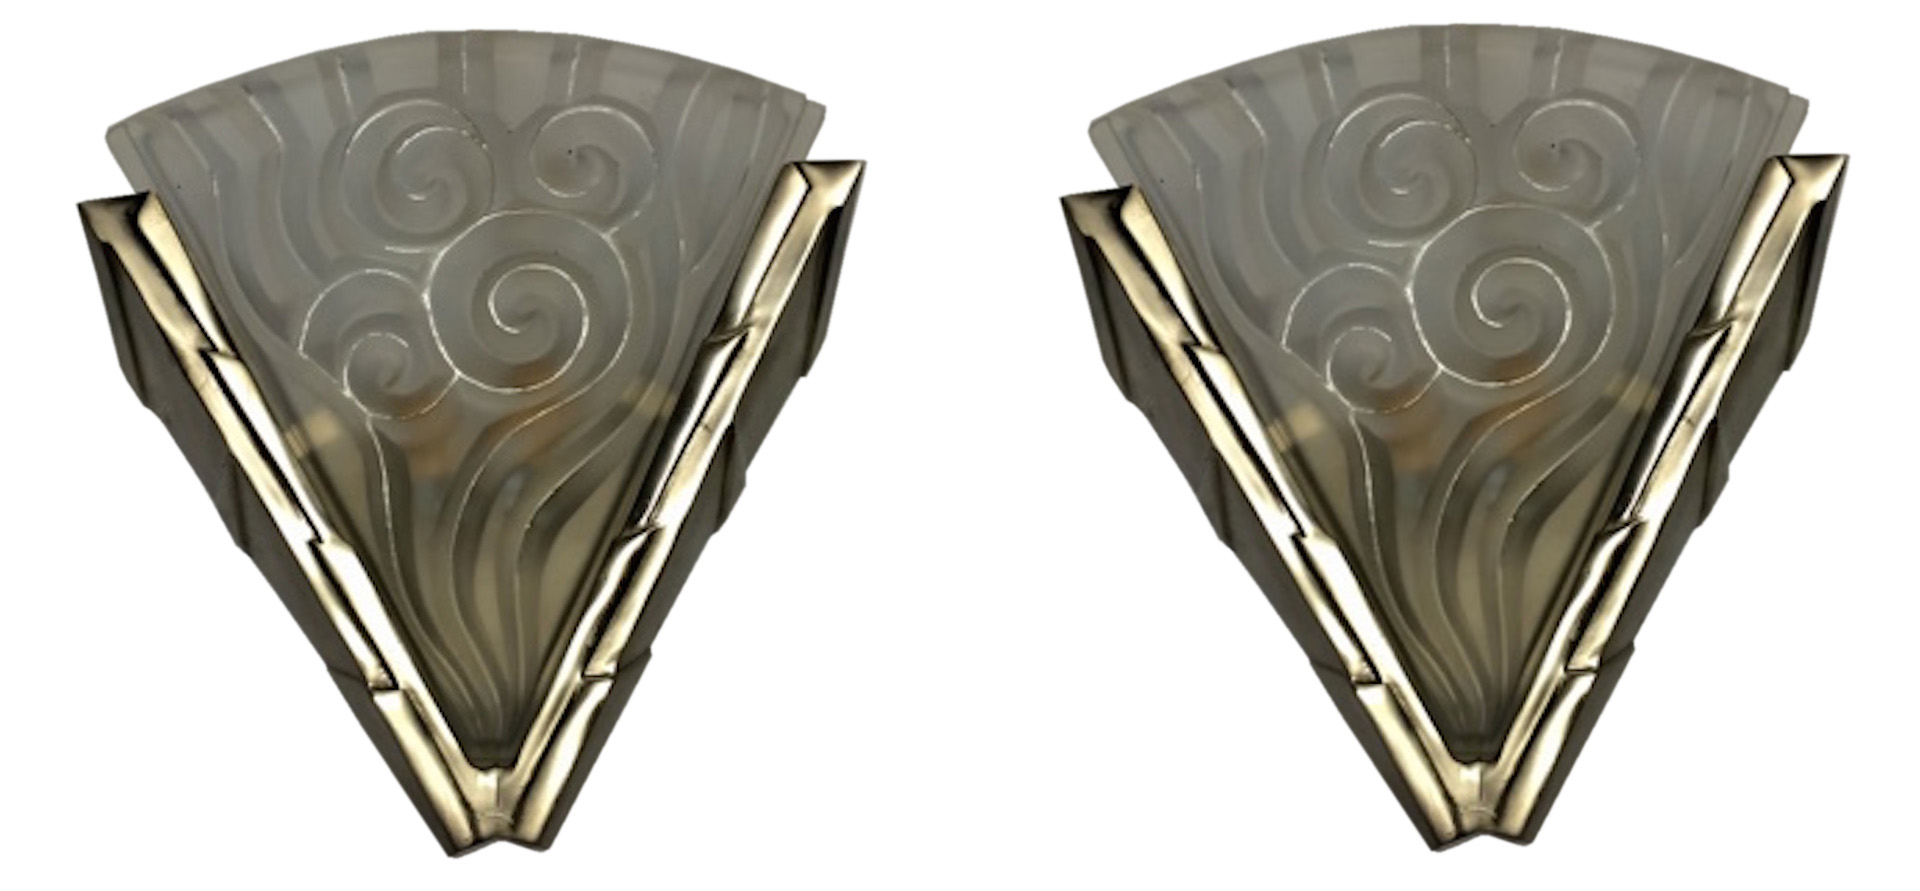 Pair French Art Deco Wall Sconces By Degue Modernism